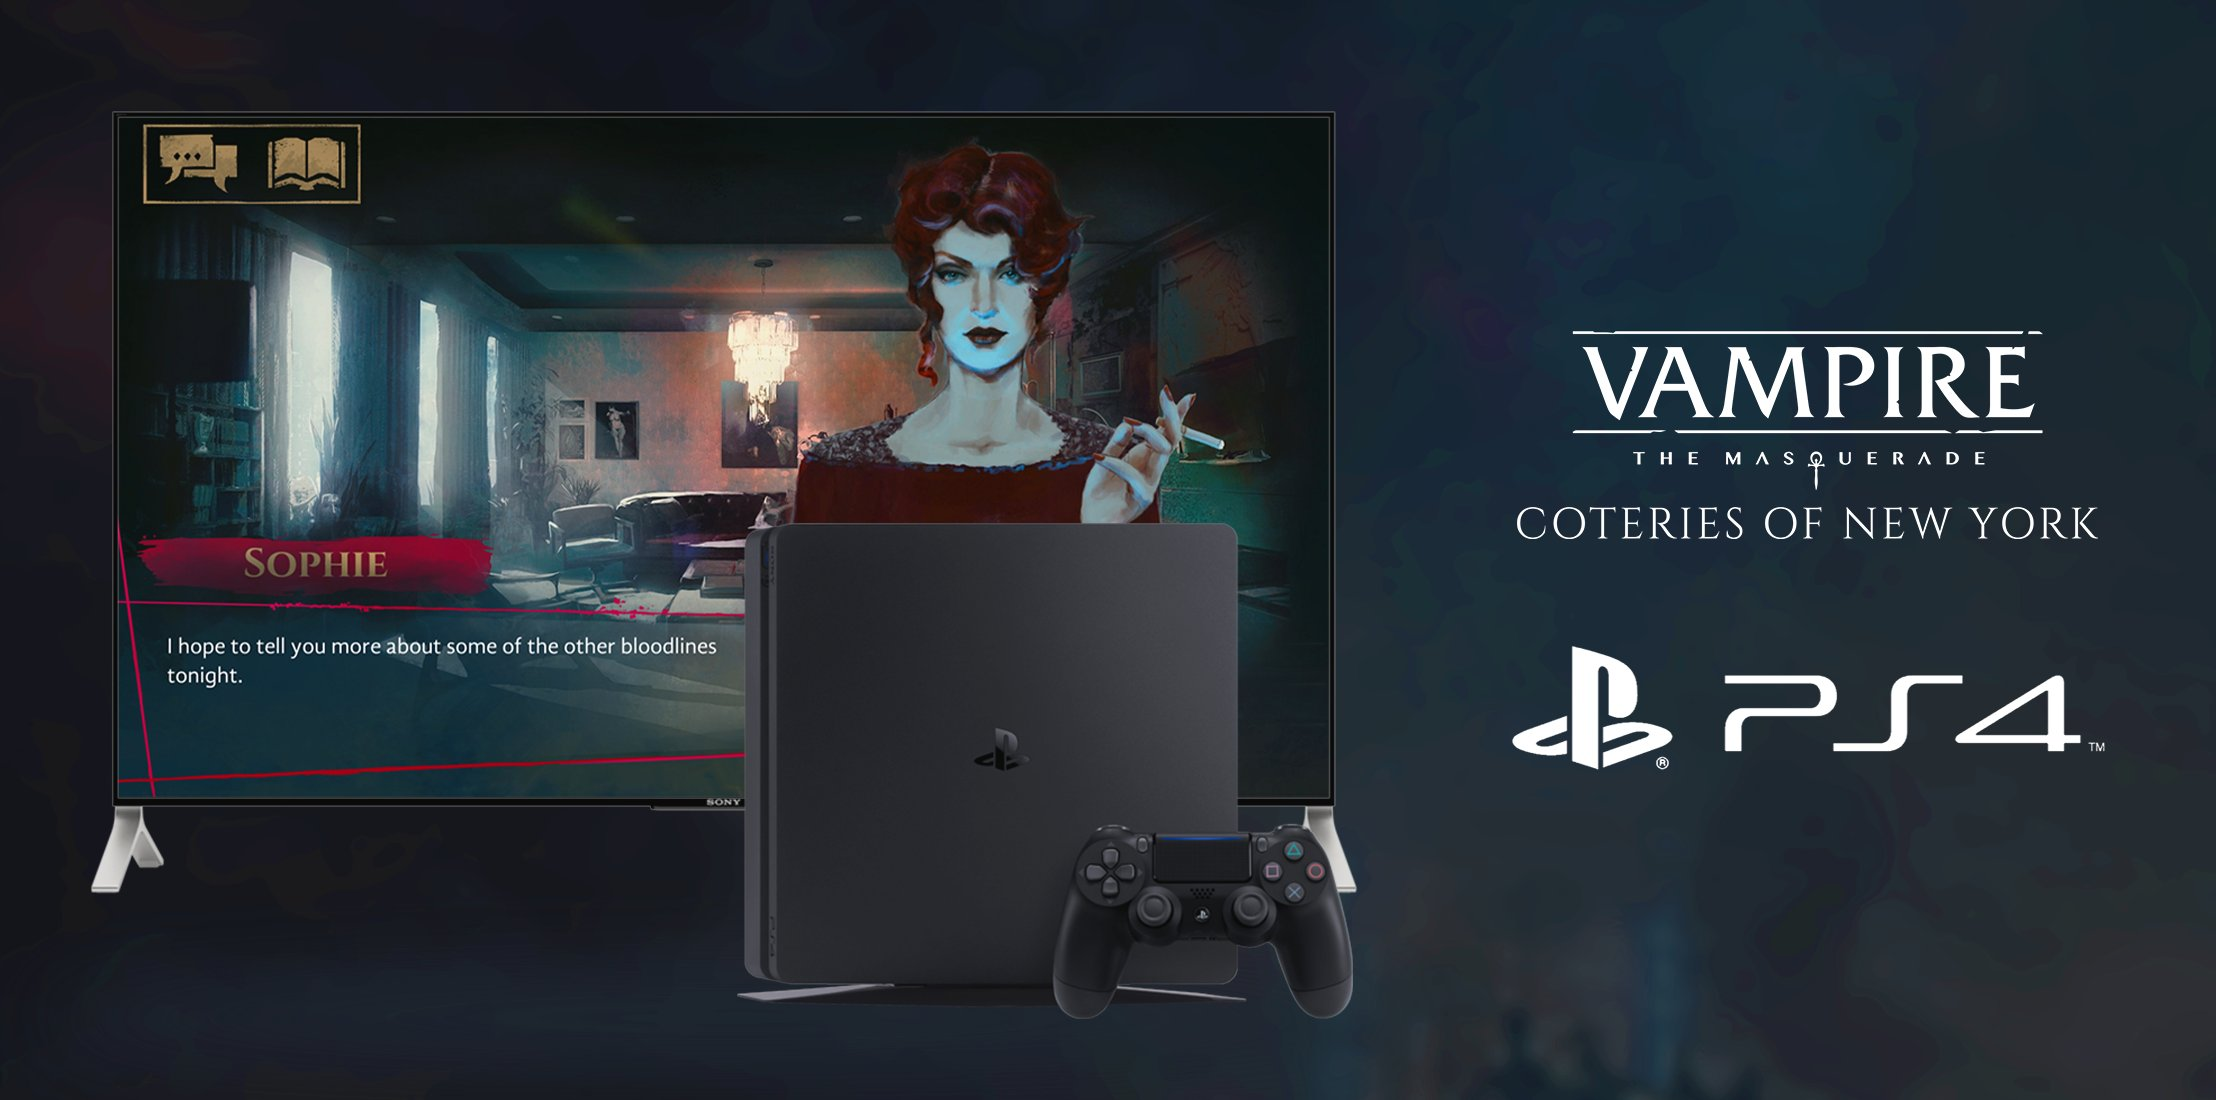 Vampire: The Masquerade - Coteries of New York выйдет на PS4 25 марта